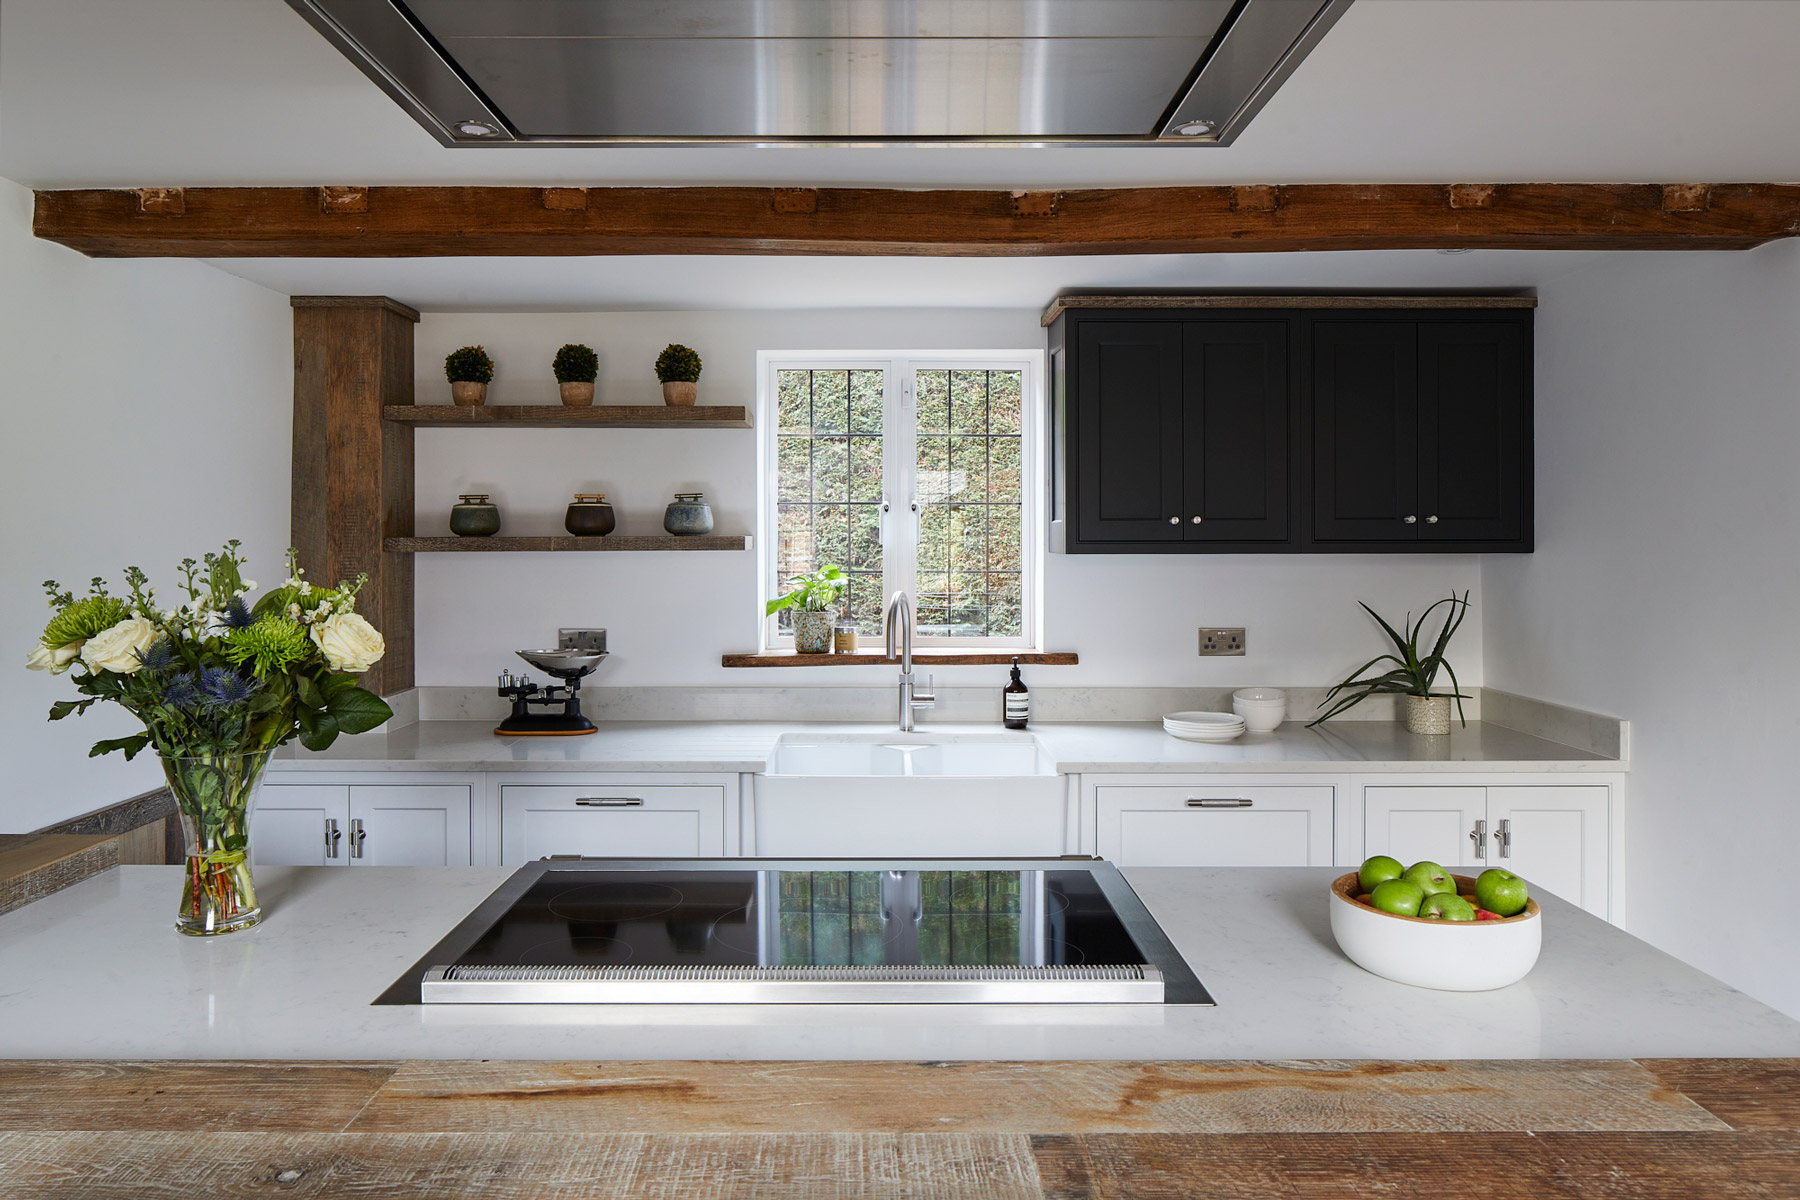 Bespoke painted kitchen with open shelves and dark wall cabinet on sink run